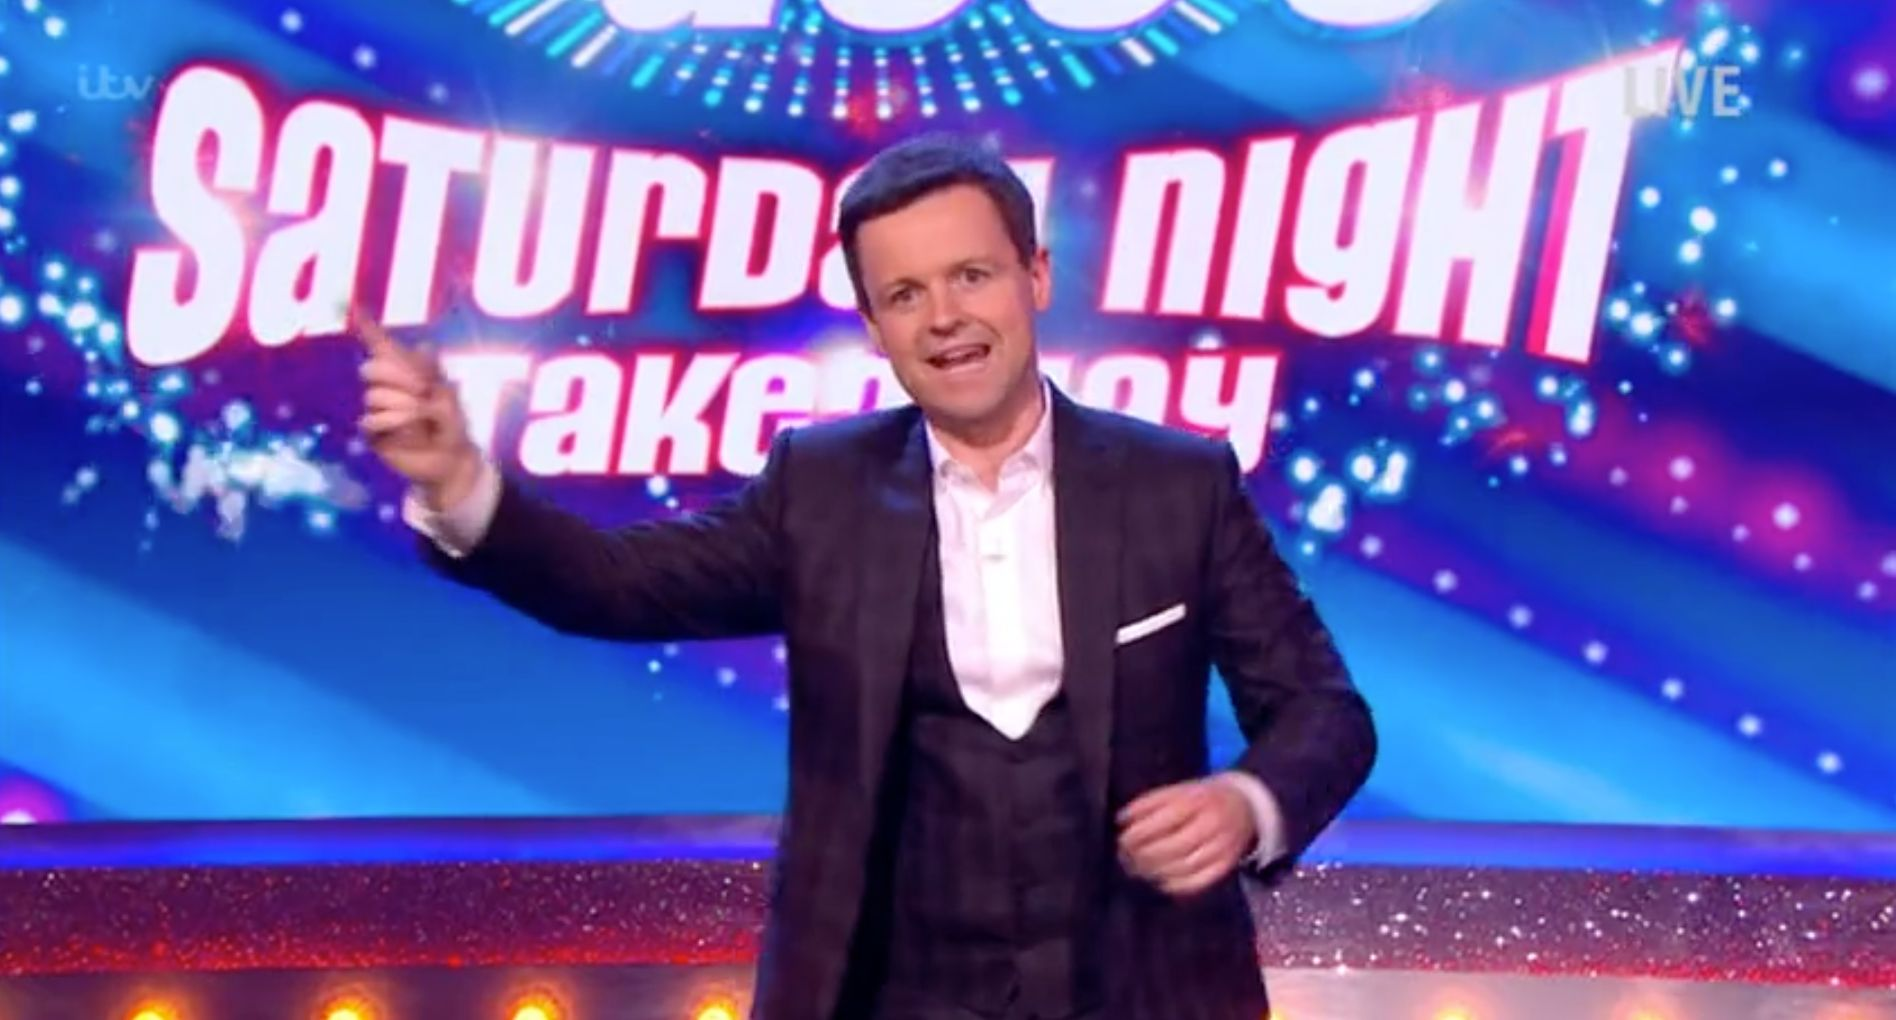 Declan Donnelly Wins Over 'Saturday Night Takeaway' Viewers With First Solo